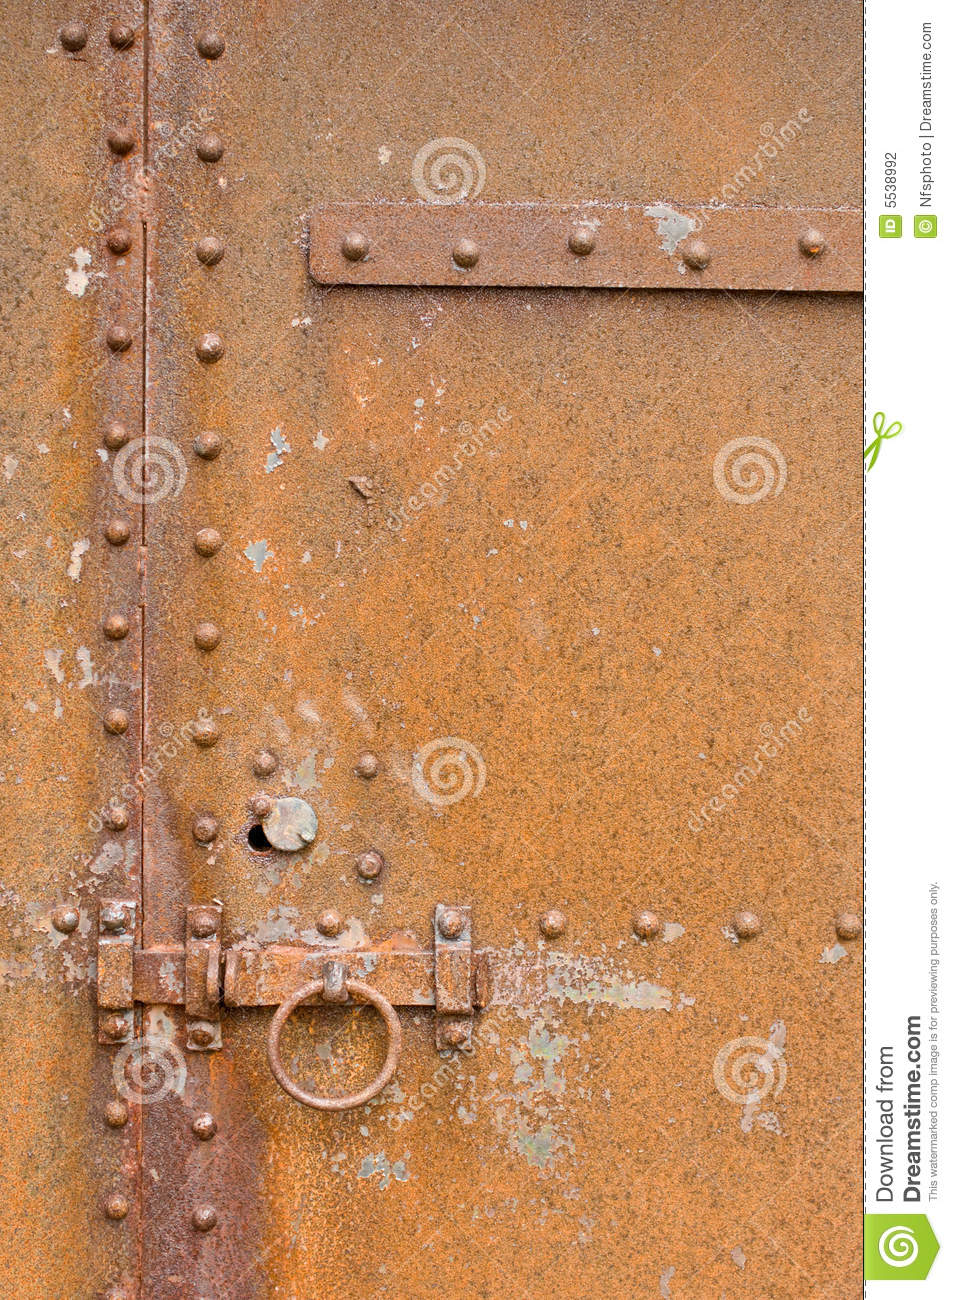 Rusty Corroded Old Metal Door Latch And Bolts Stock